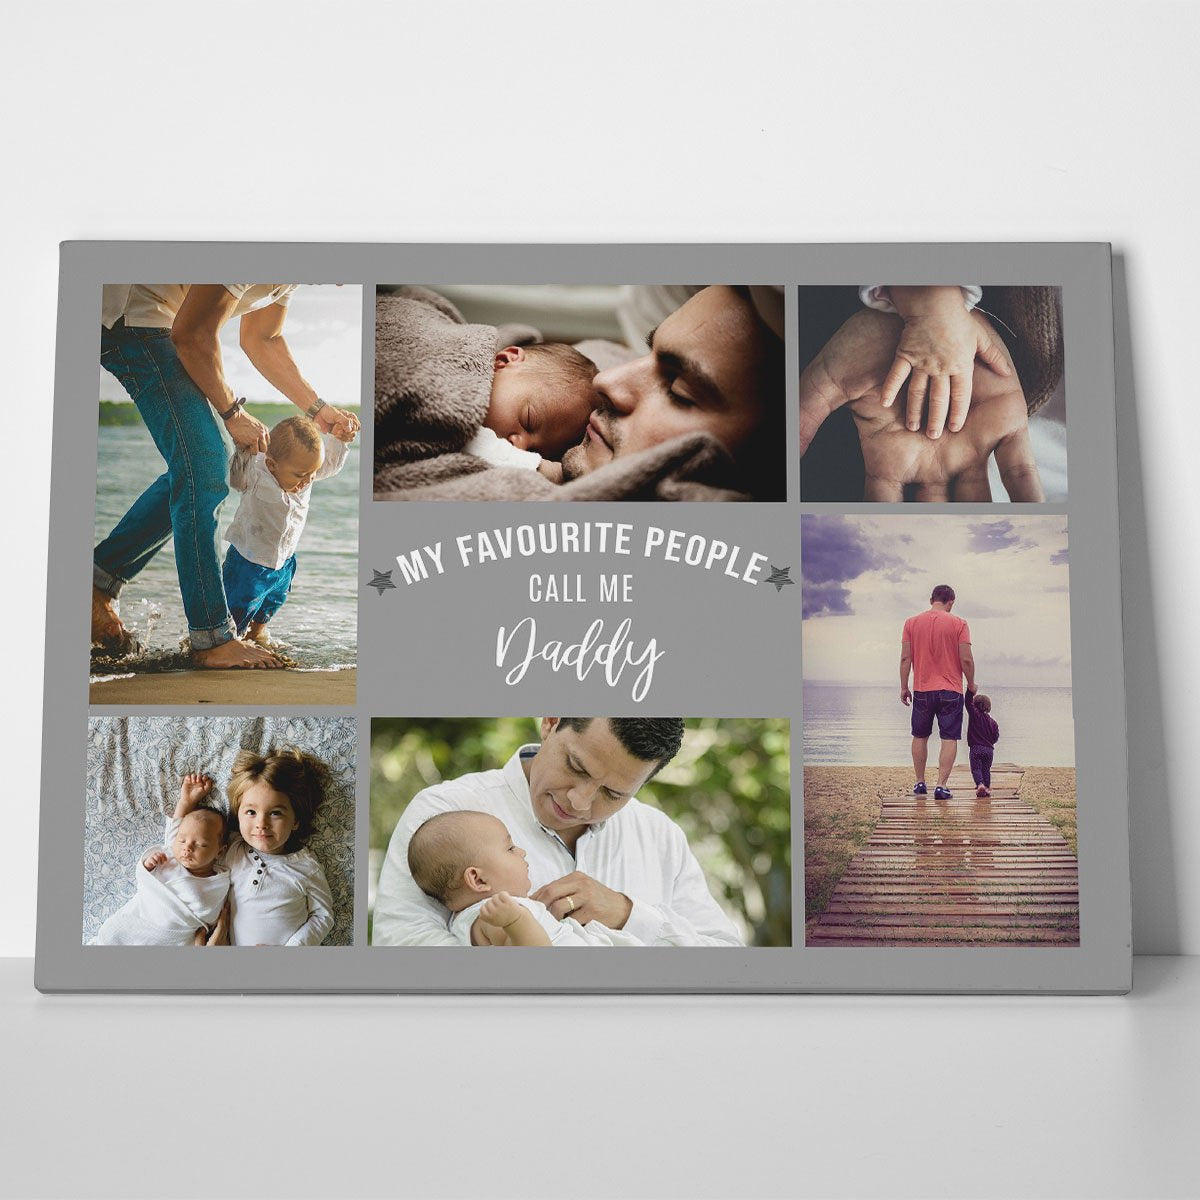 My Favourite People Call Me Photo Canvas Print